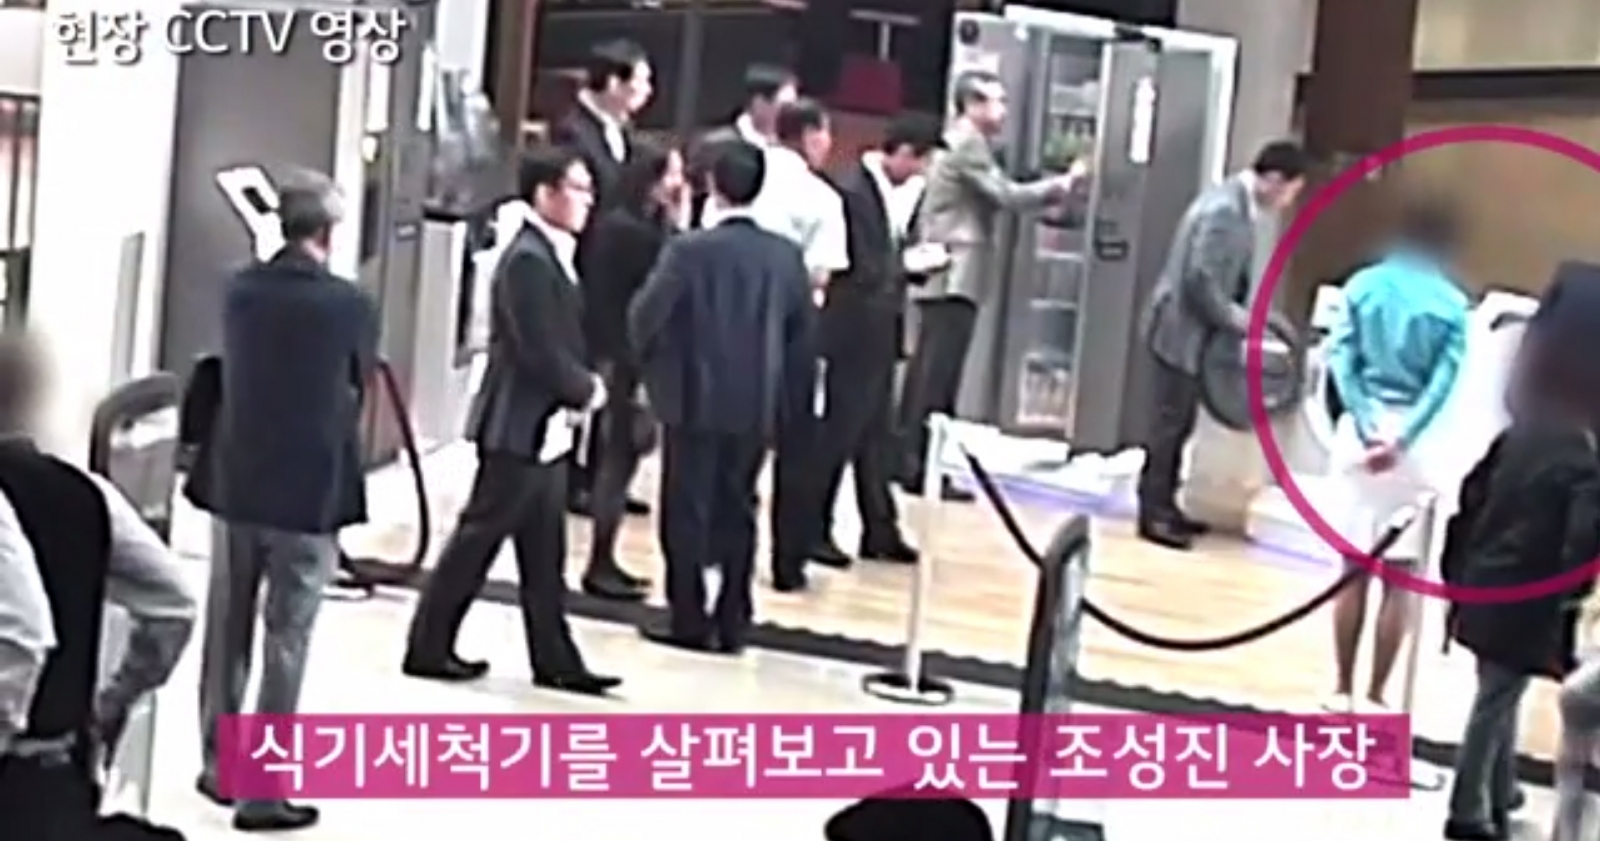 LG has released CCTV footage on YouTube showing its executives examining Samsung washing machines in Berline